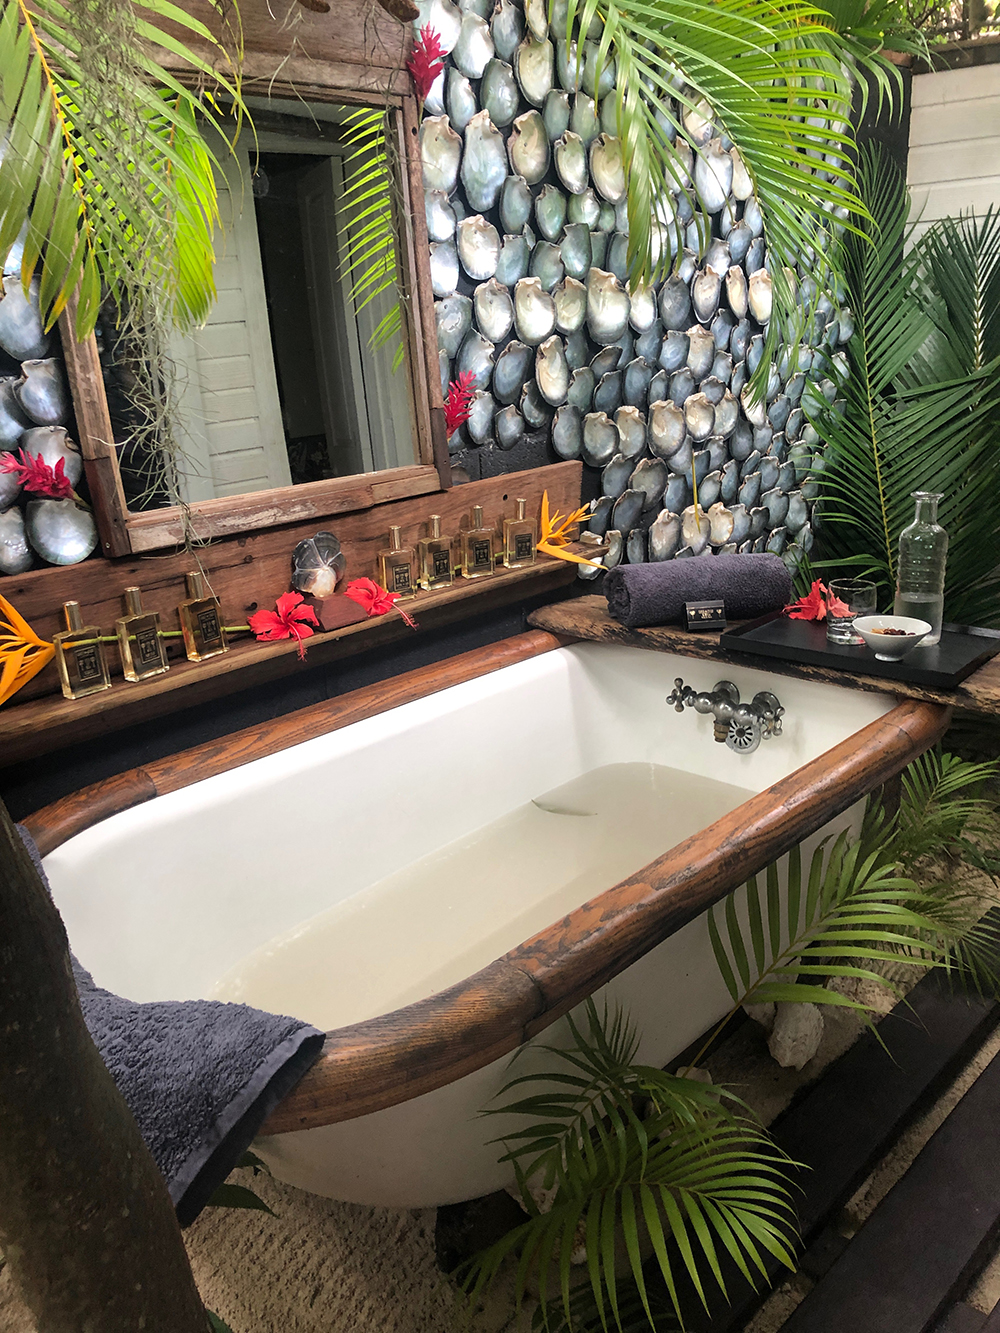 tub other view.jpg